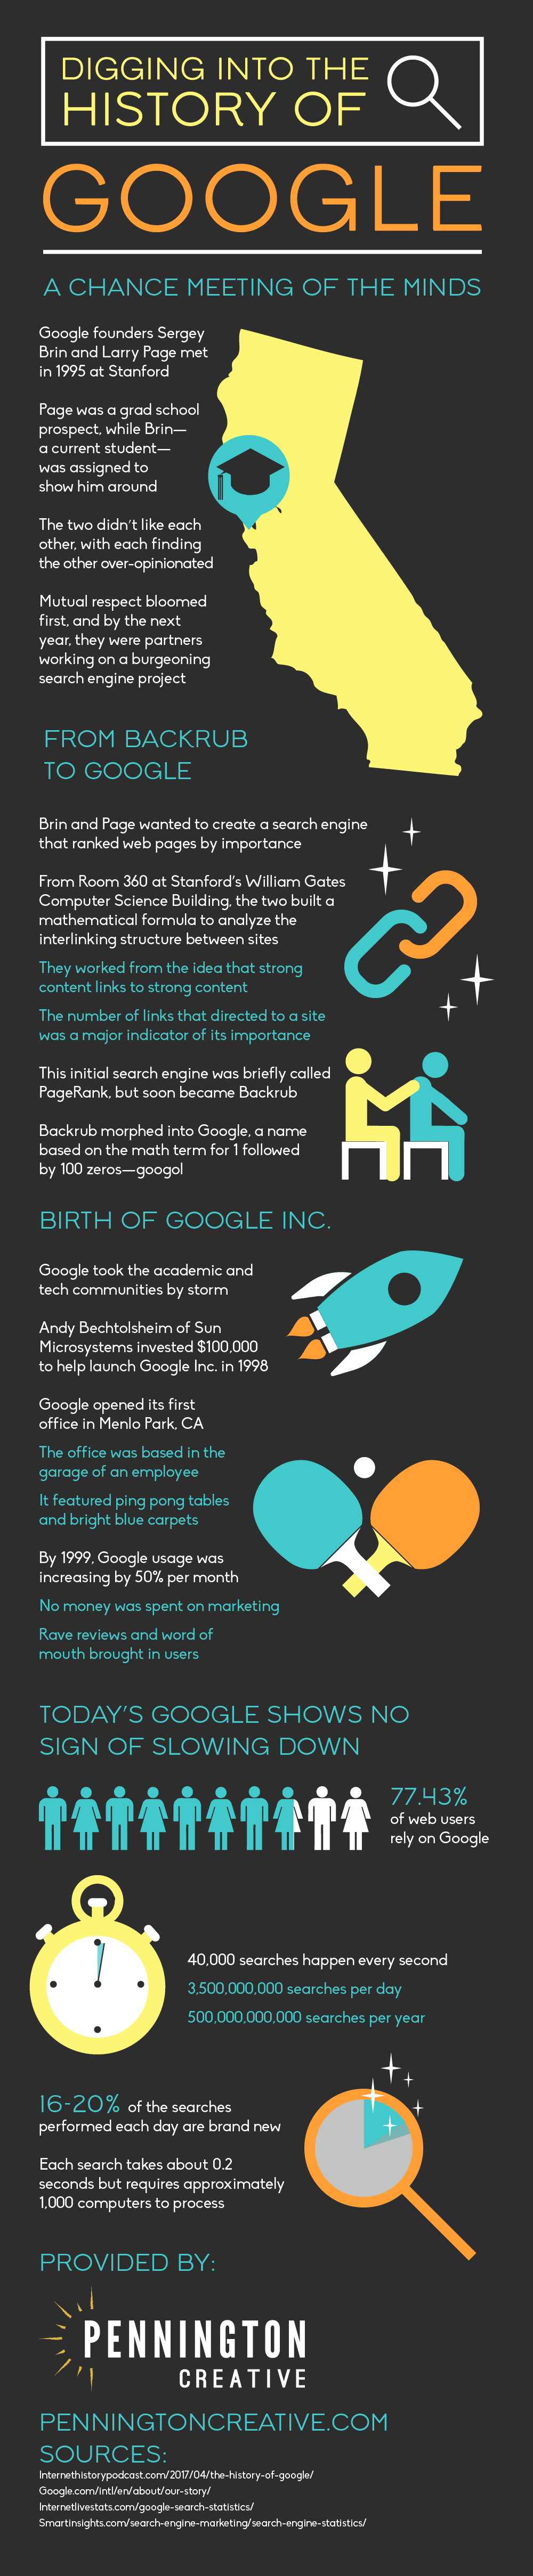 Infographic about the history of Google.